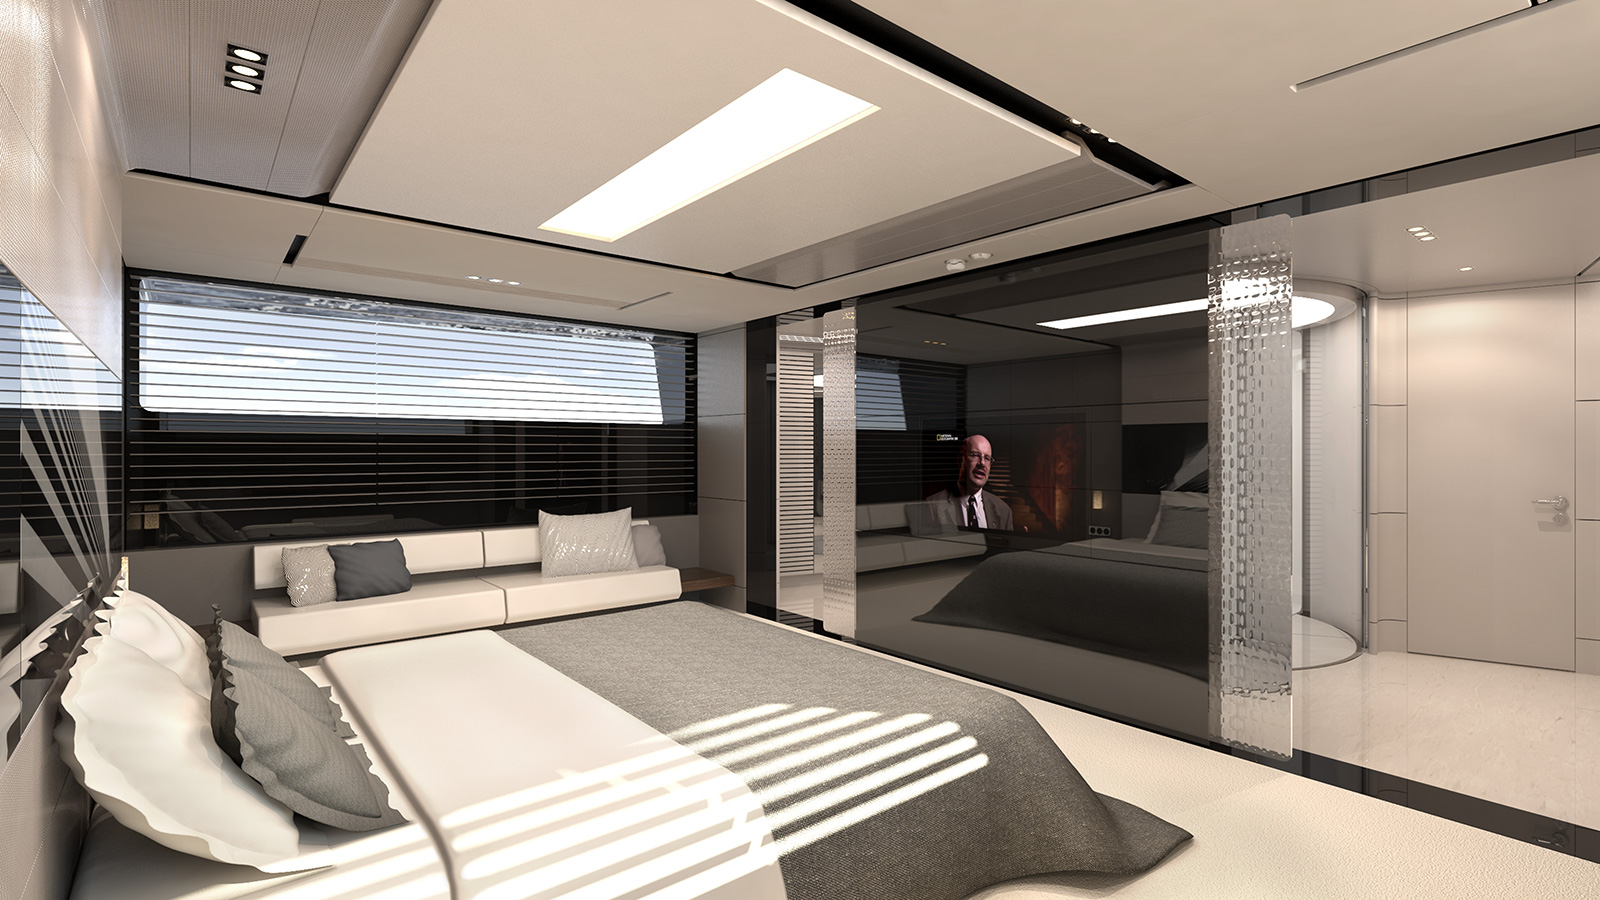 one-of-the-cabins-on-the-aeon-380-yacht-concept-by-scaro-design